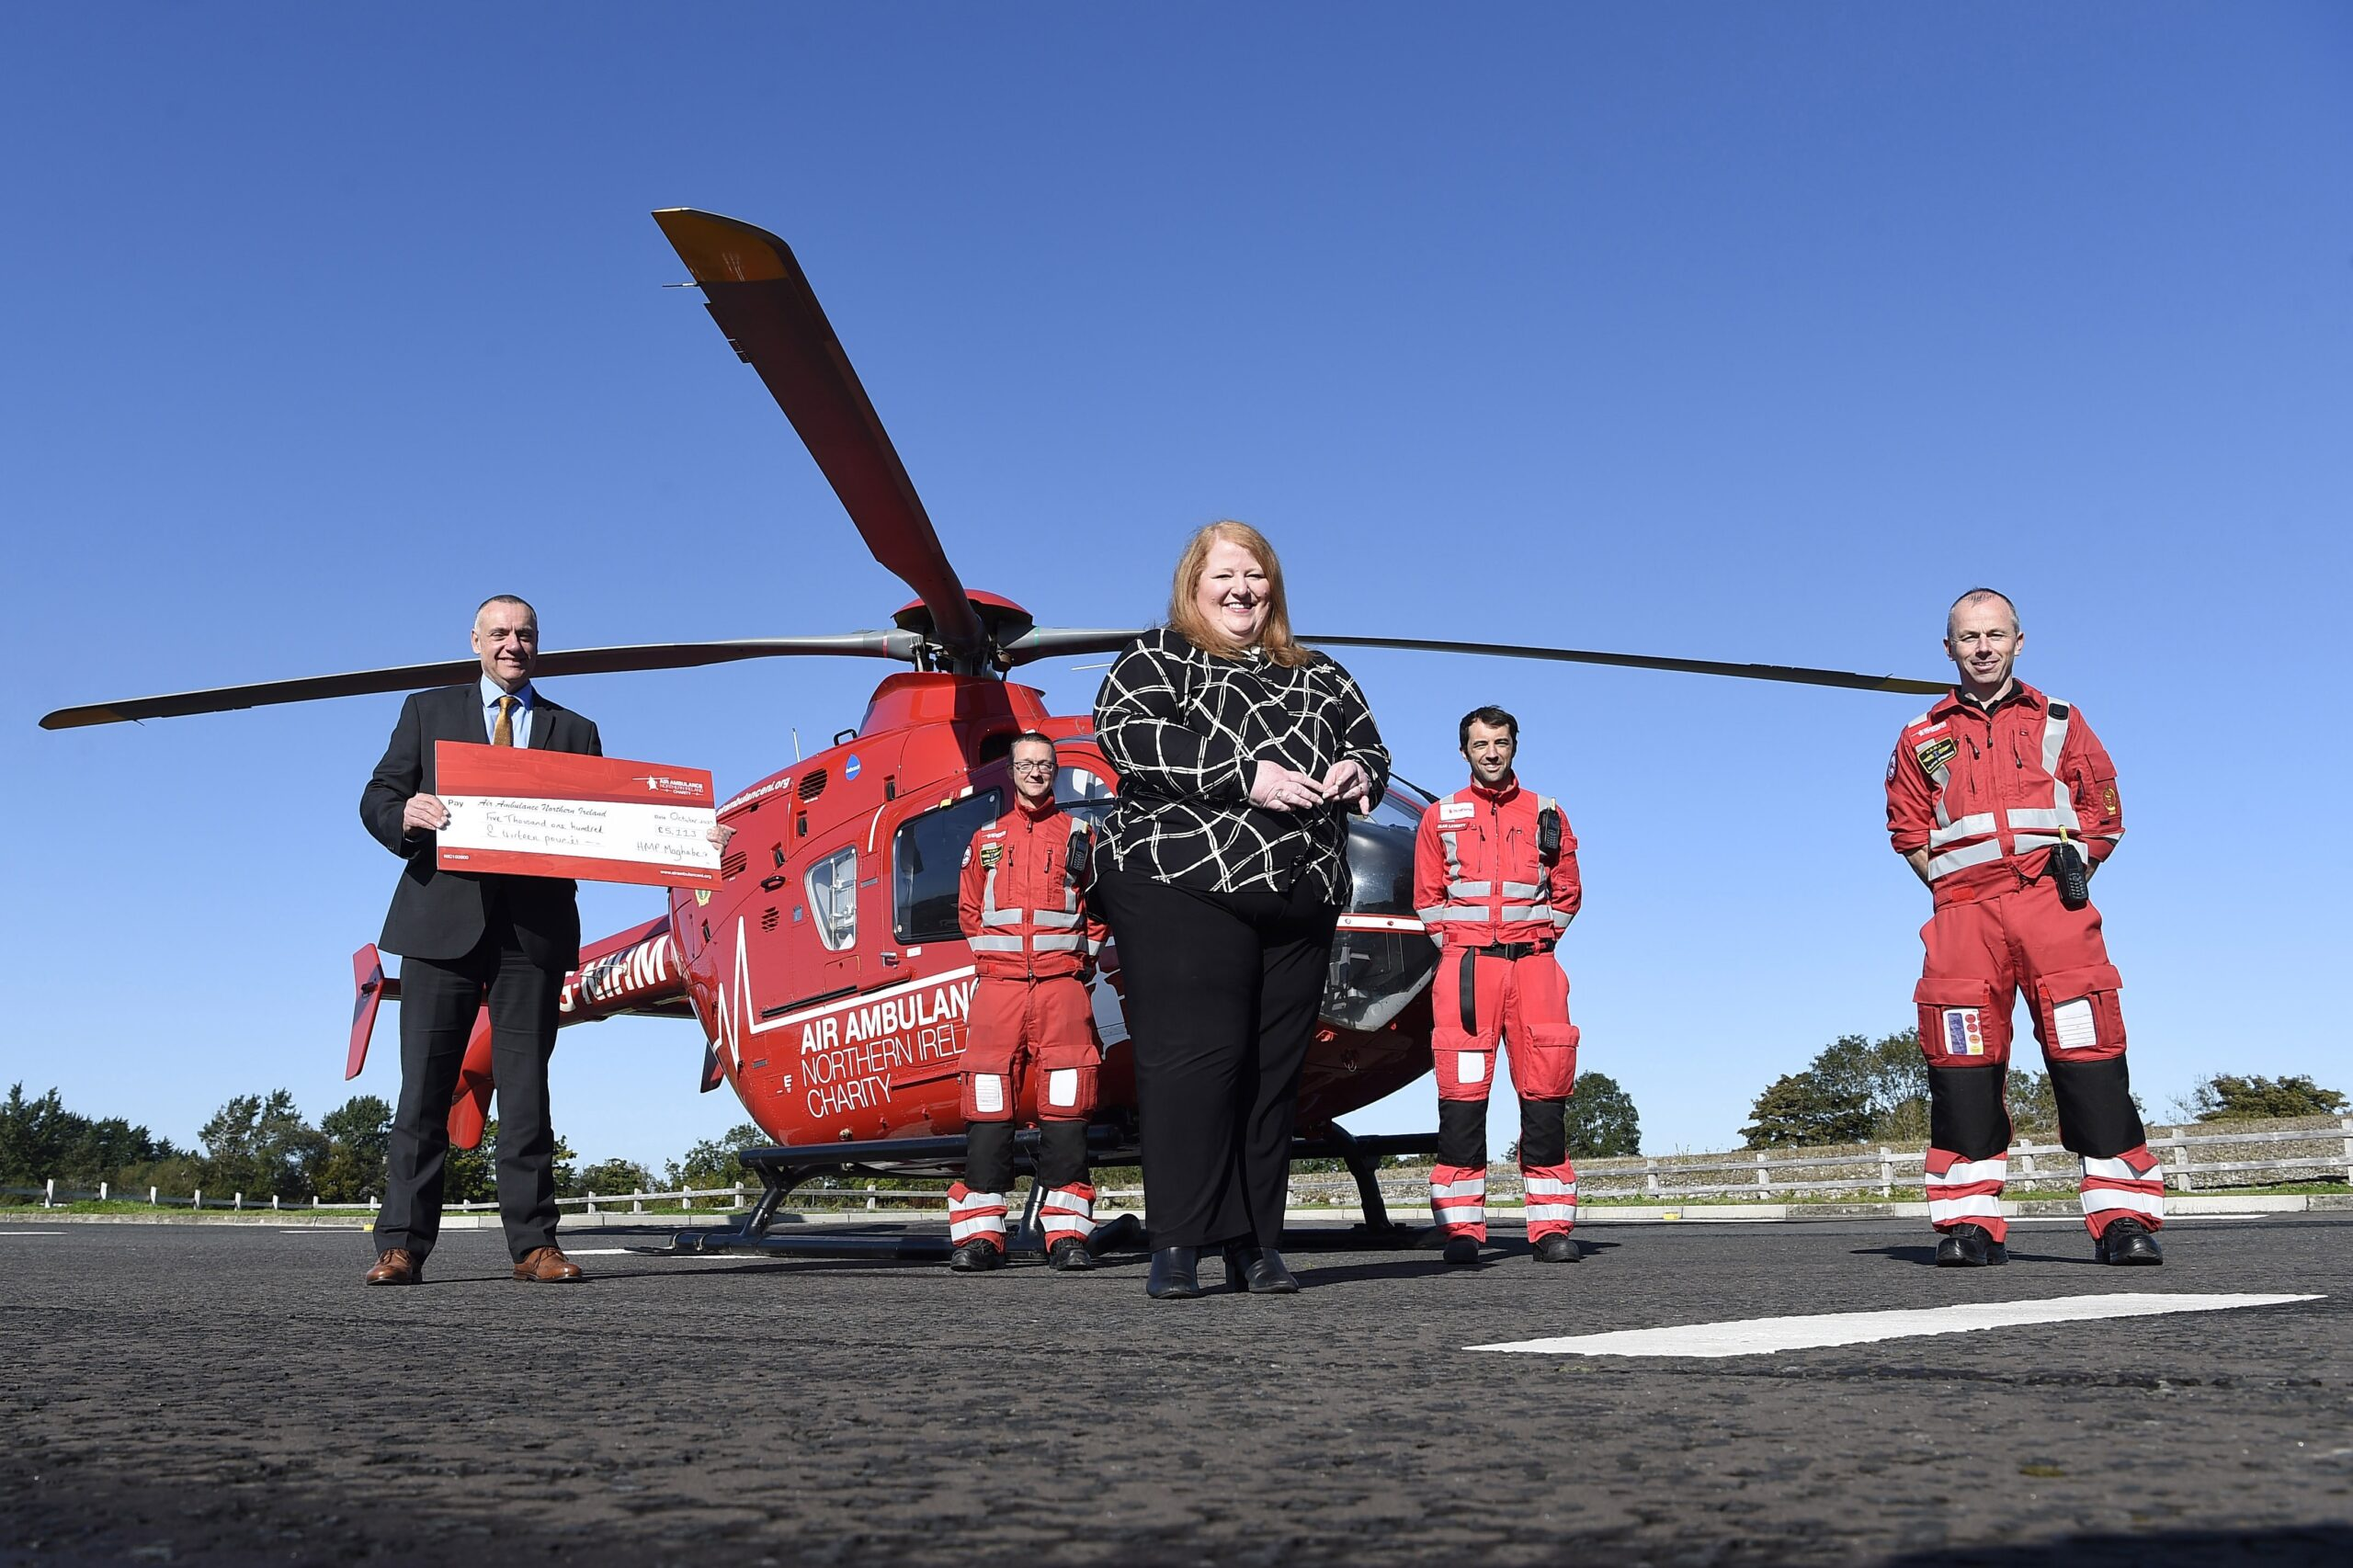 air ambulance-Naomi Long presents cheque - Newry Times